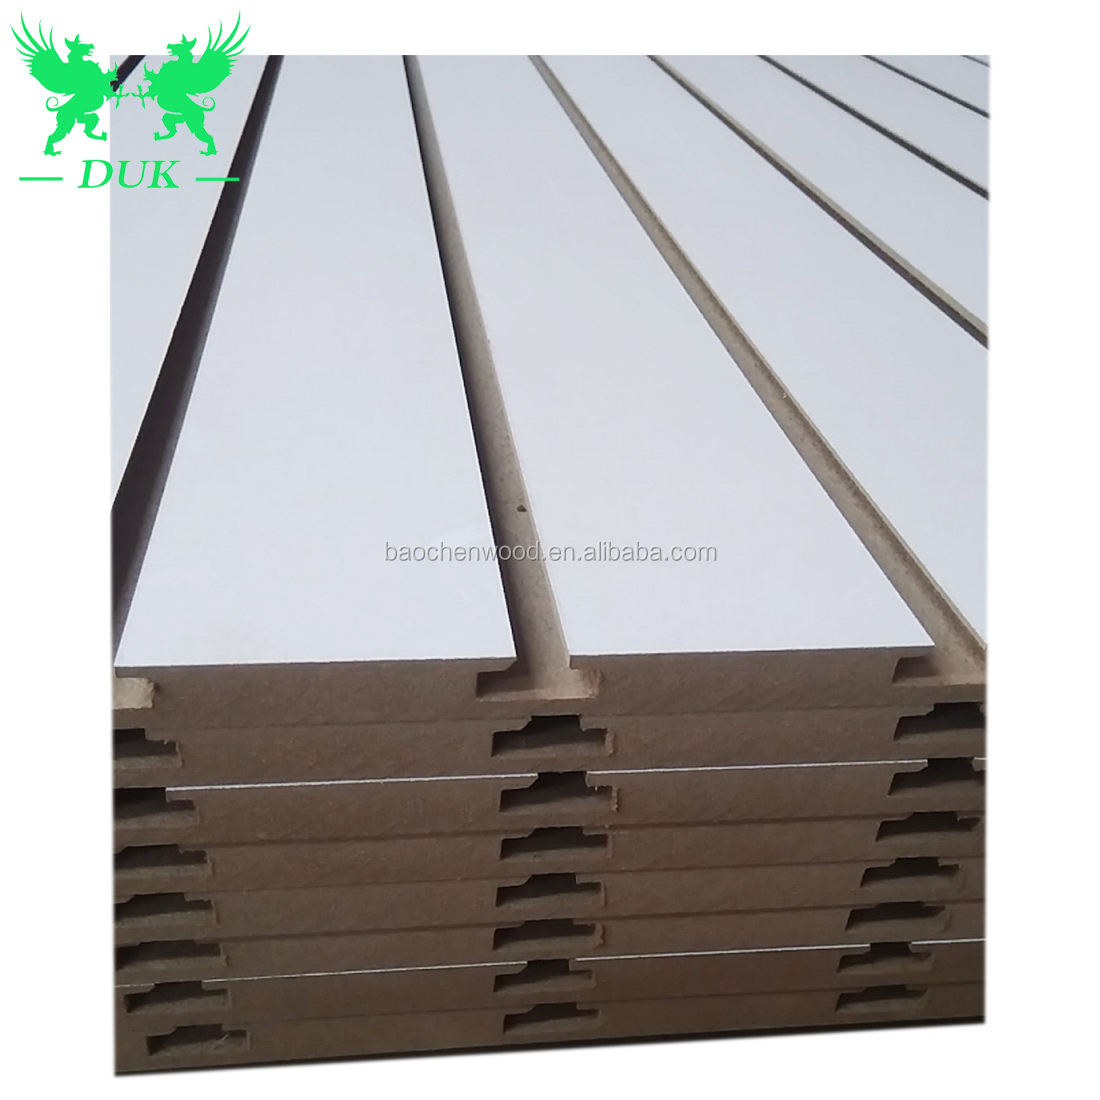 <span class=keywords><strong>Aluminium</strong></span> geplaatst T slot 25mm mdf <span class=keywords><strong>slatwall</strong></span> display met groeven